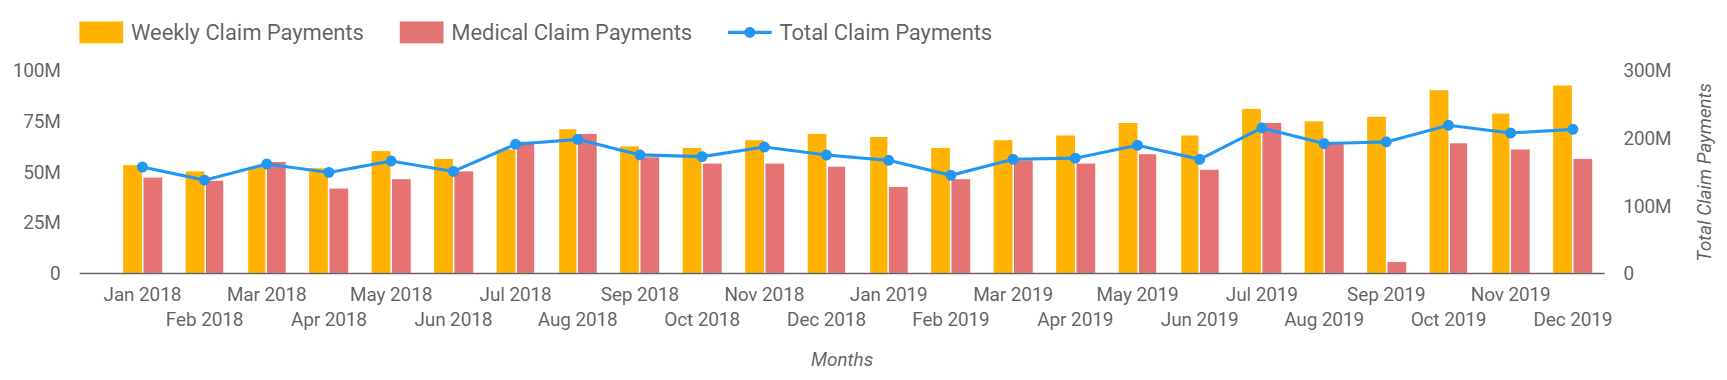 This graph shows the amounts for different claim payments, weekly, medical and the total. Contact icare for details.